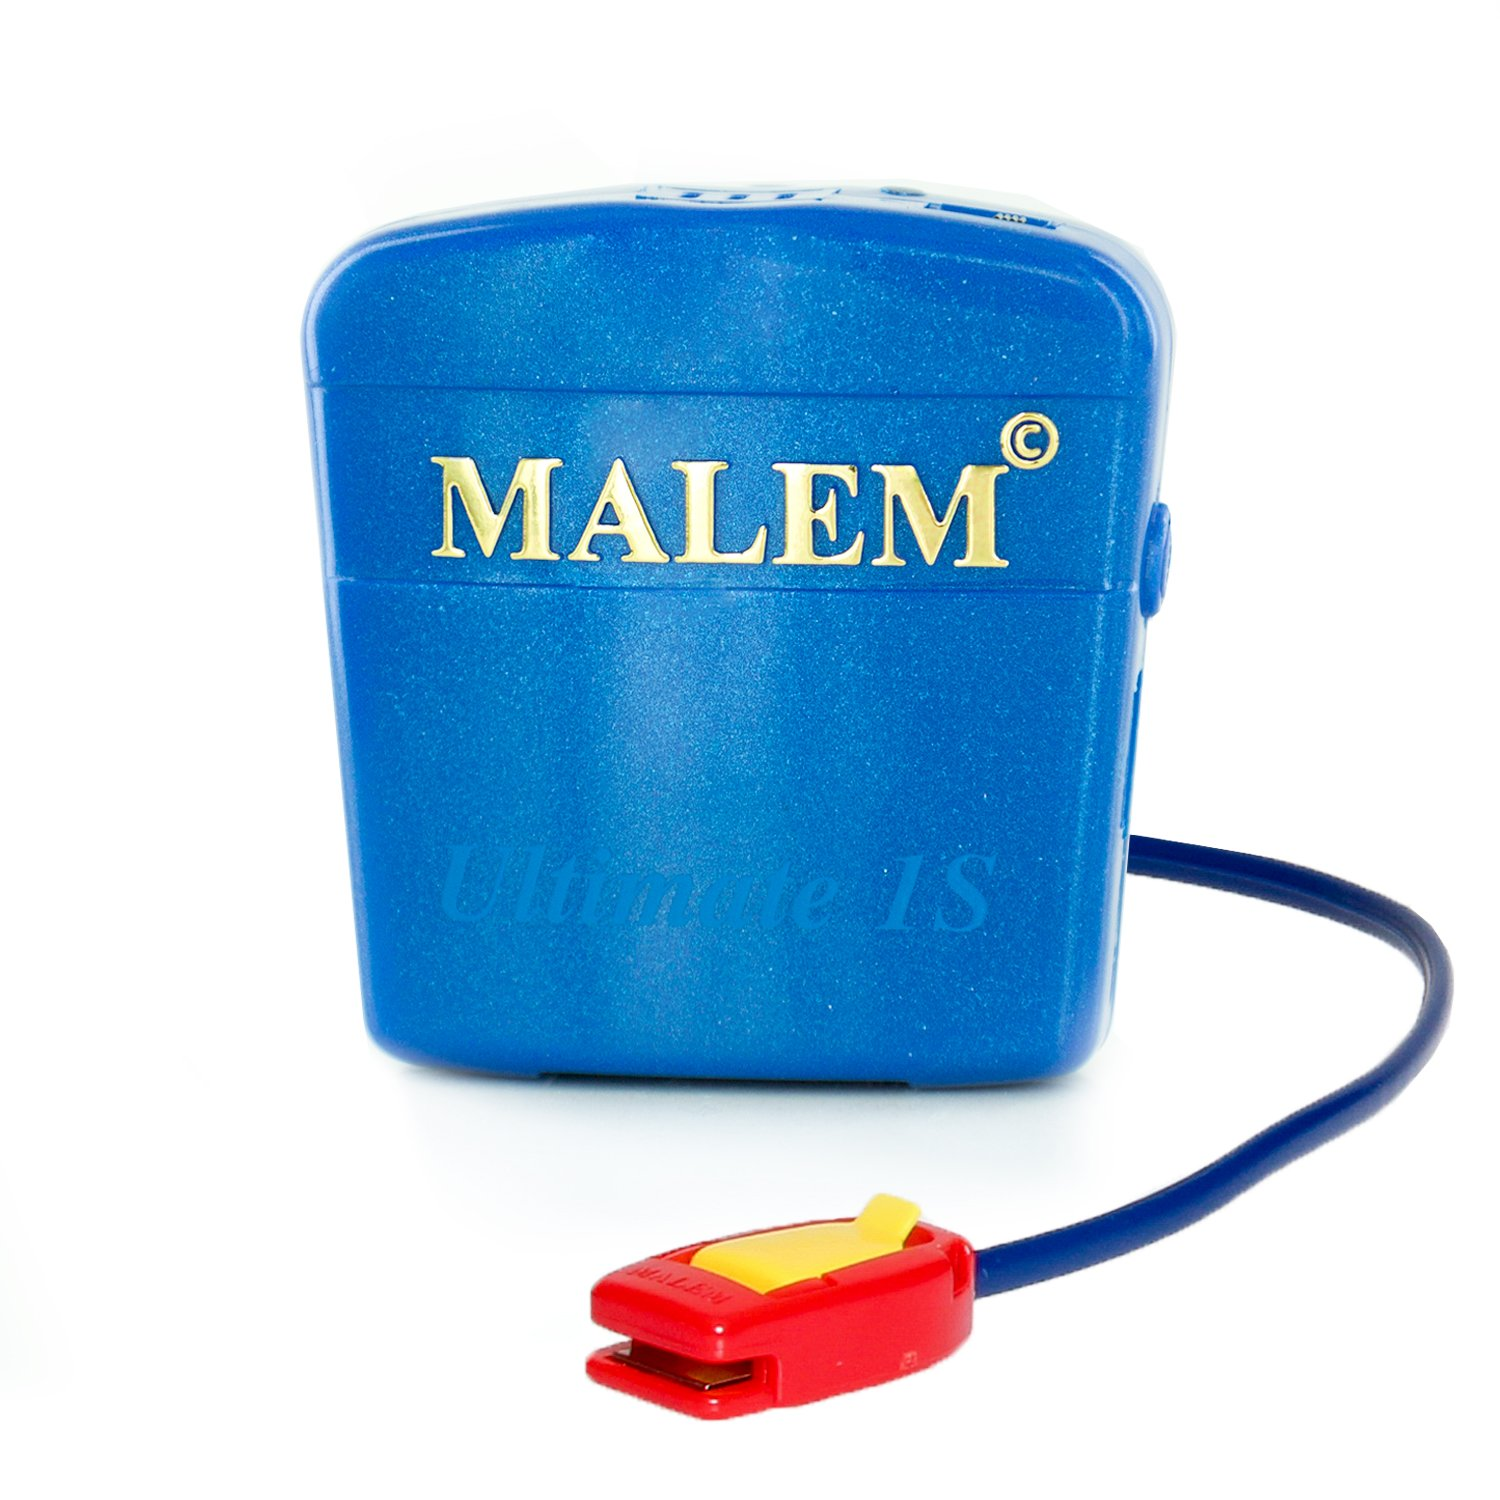 Malem Ultimate Selectable Bedwetting Enuresis Alarm with Vibration - Royal Blue by Malem